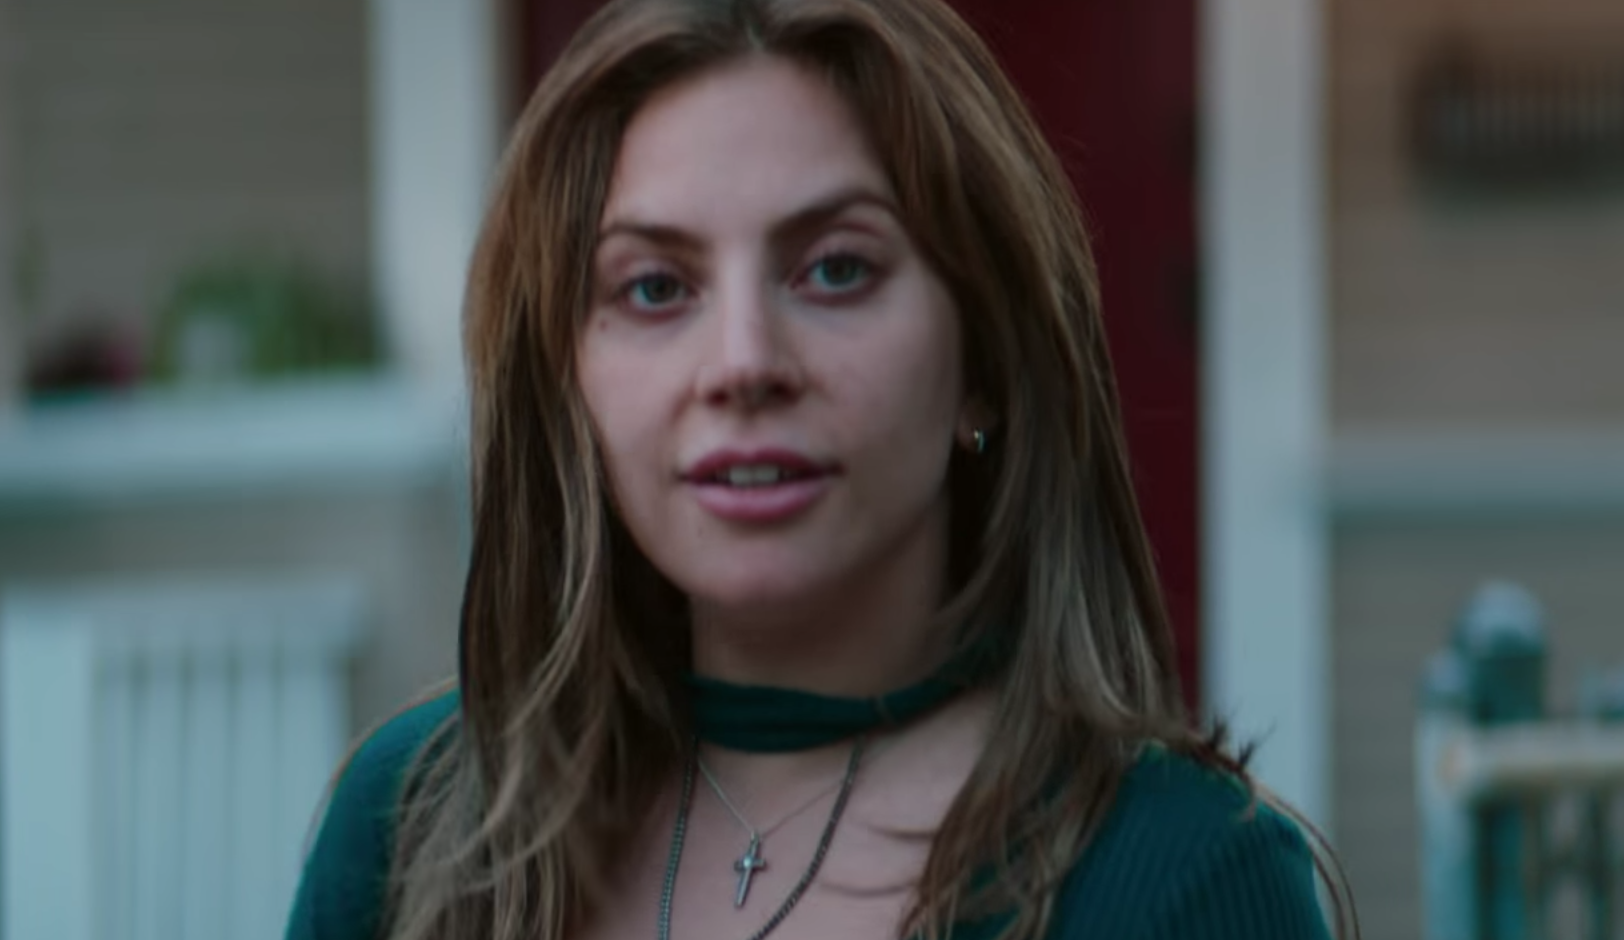 Lady Gaga makes her feature film debut in A Star is Born: Watch the trailer